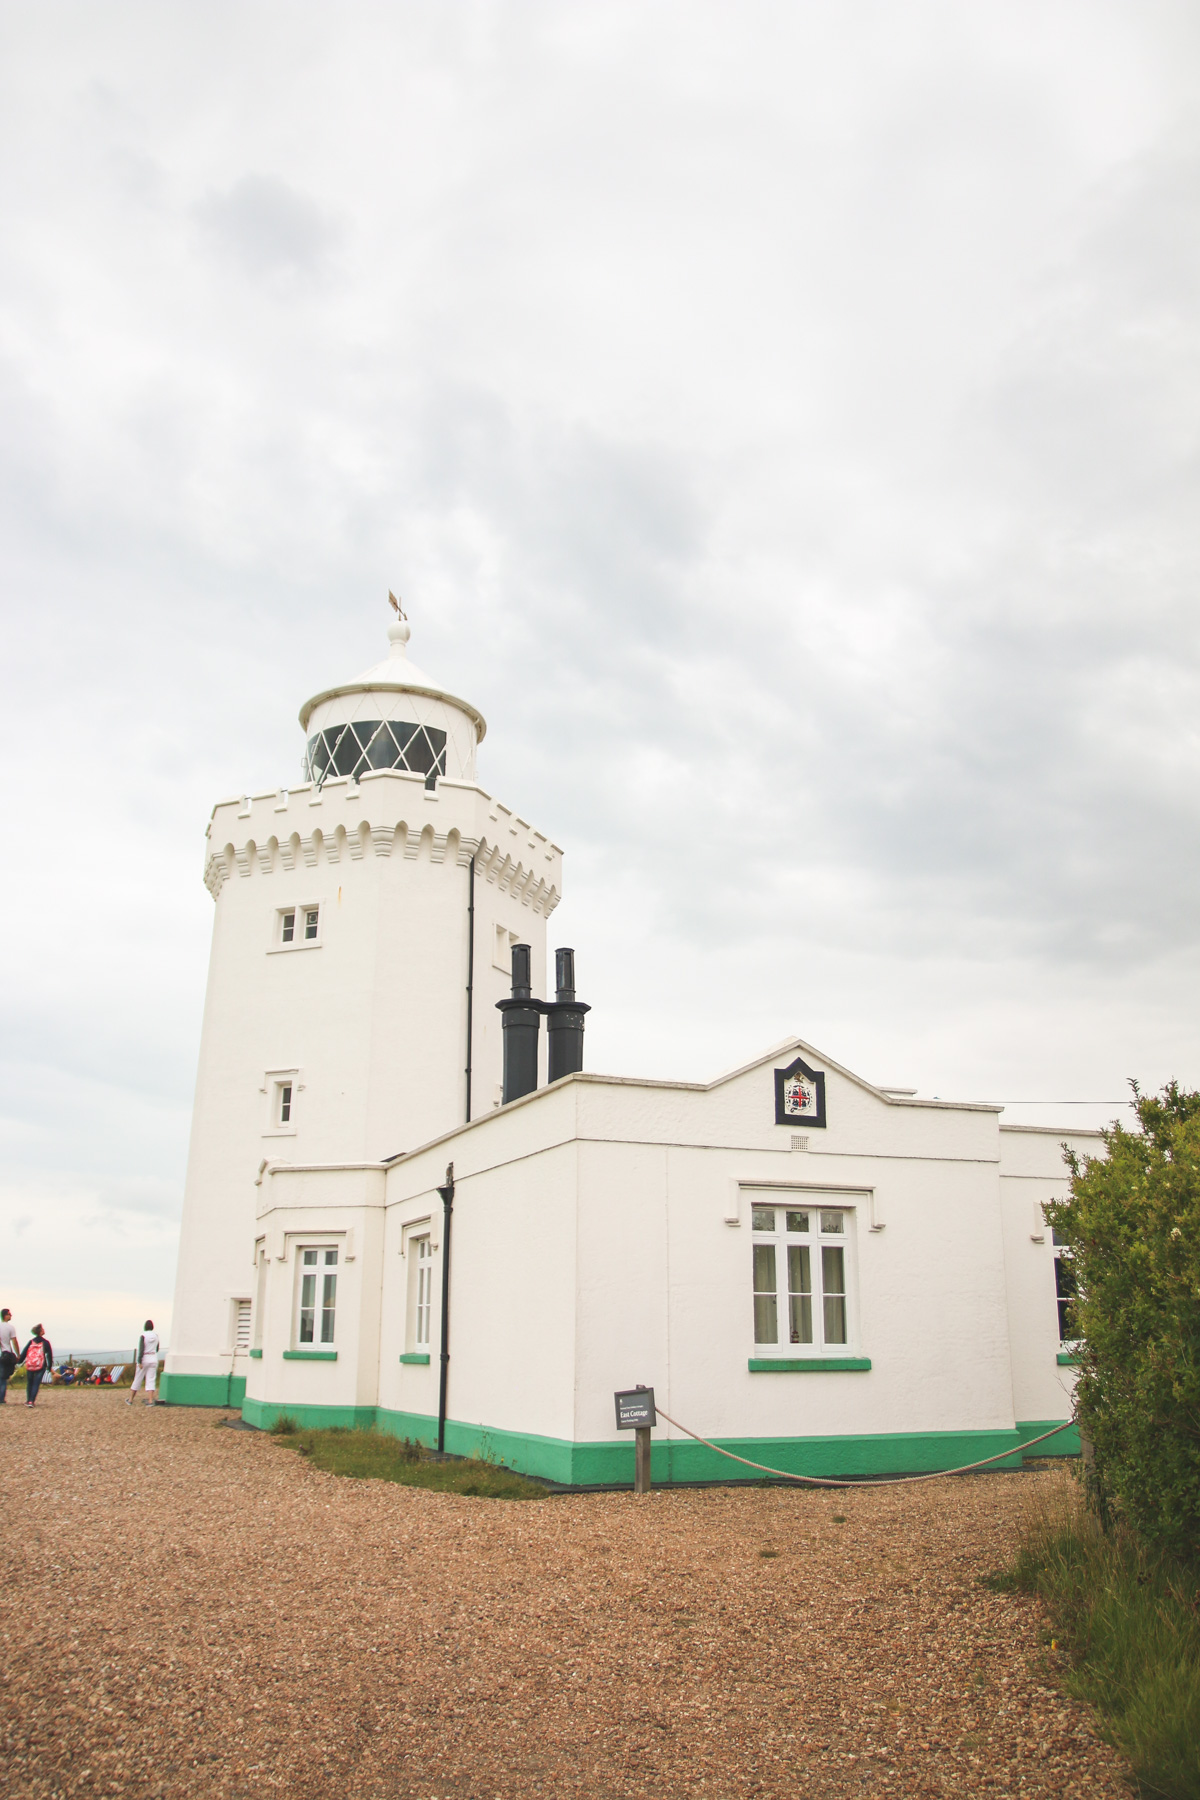 South Foreland Lighthouse at the White Cliffs of Dover